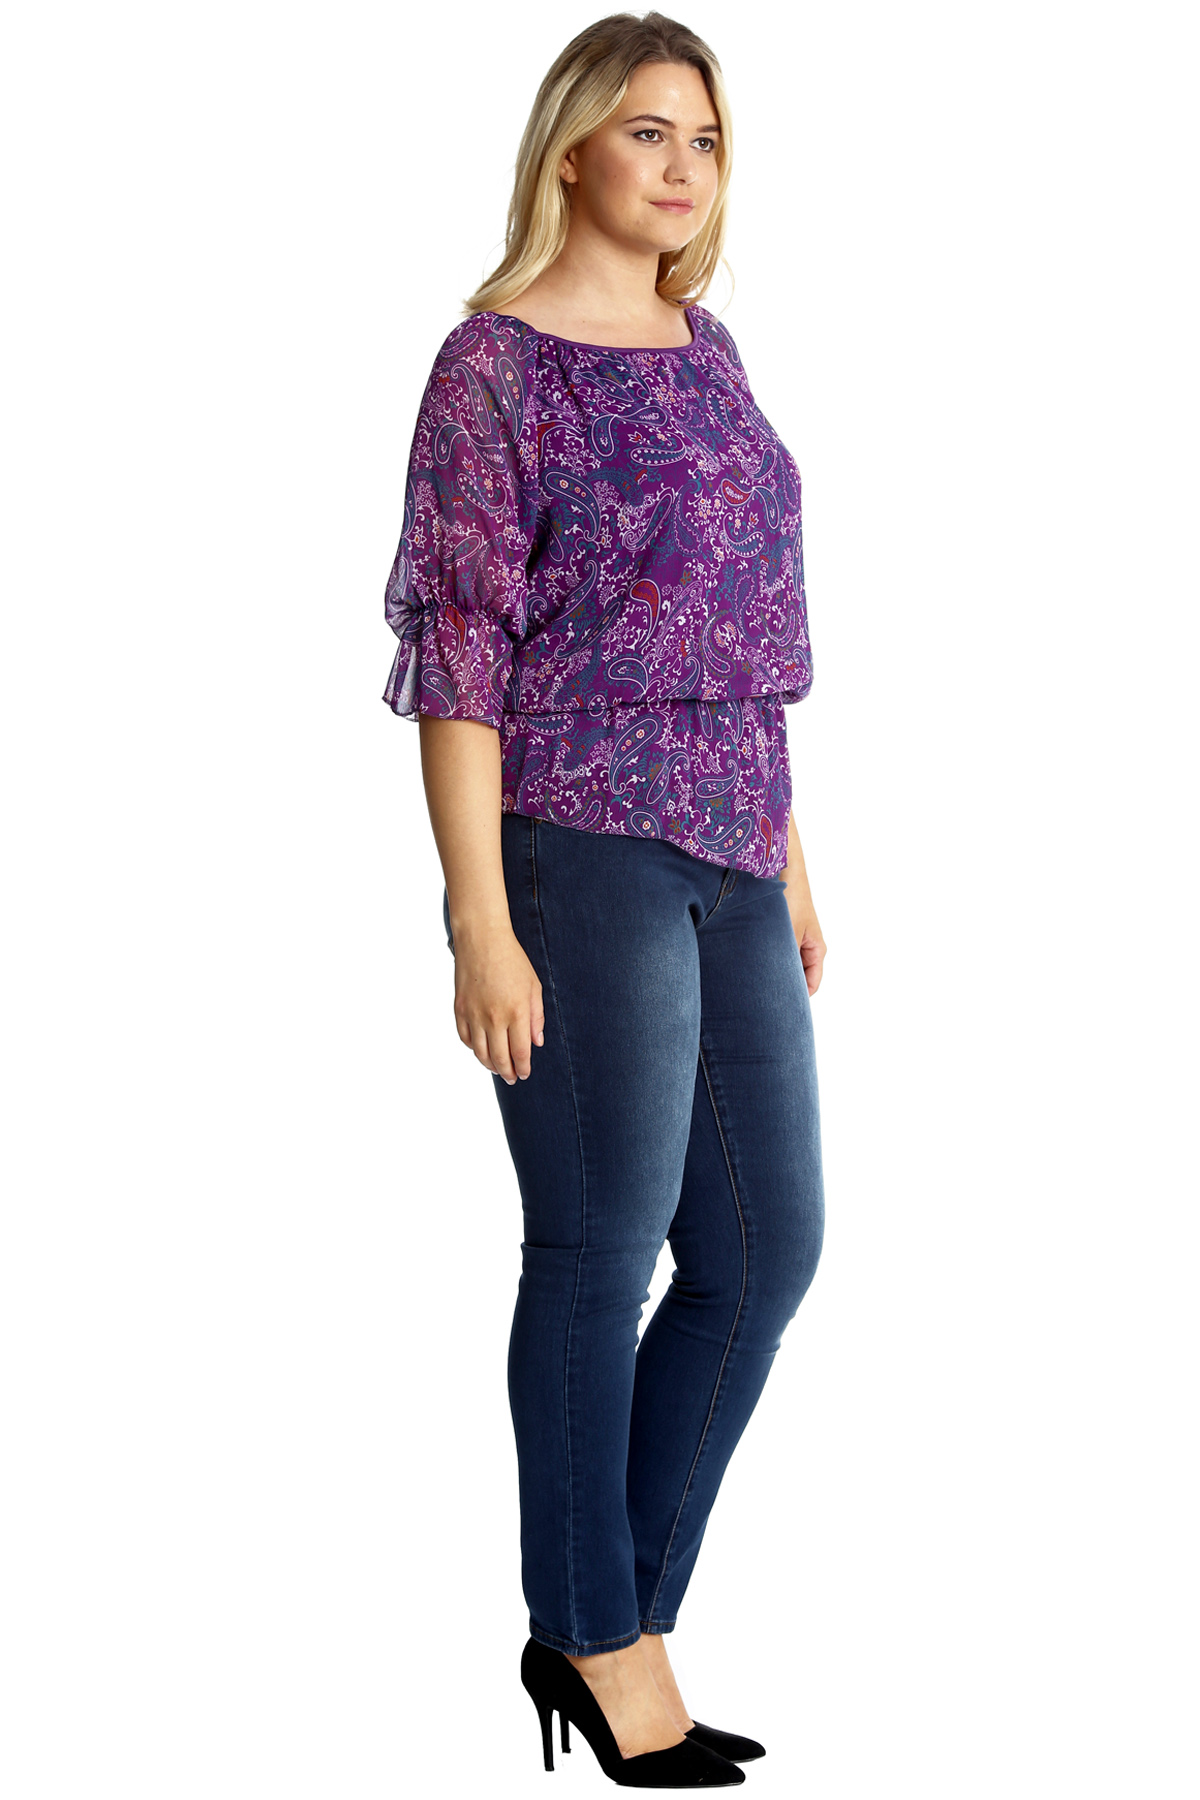 New Ladies Paisley Print Plus Size Top Womens Gypsy Tunic Elastic Frill Nouvelle